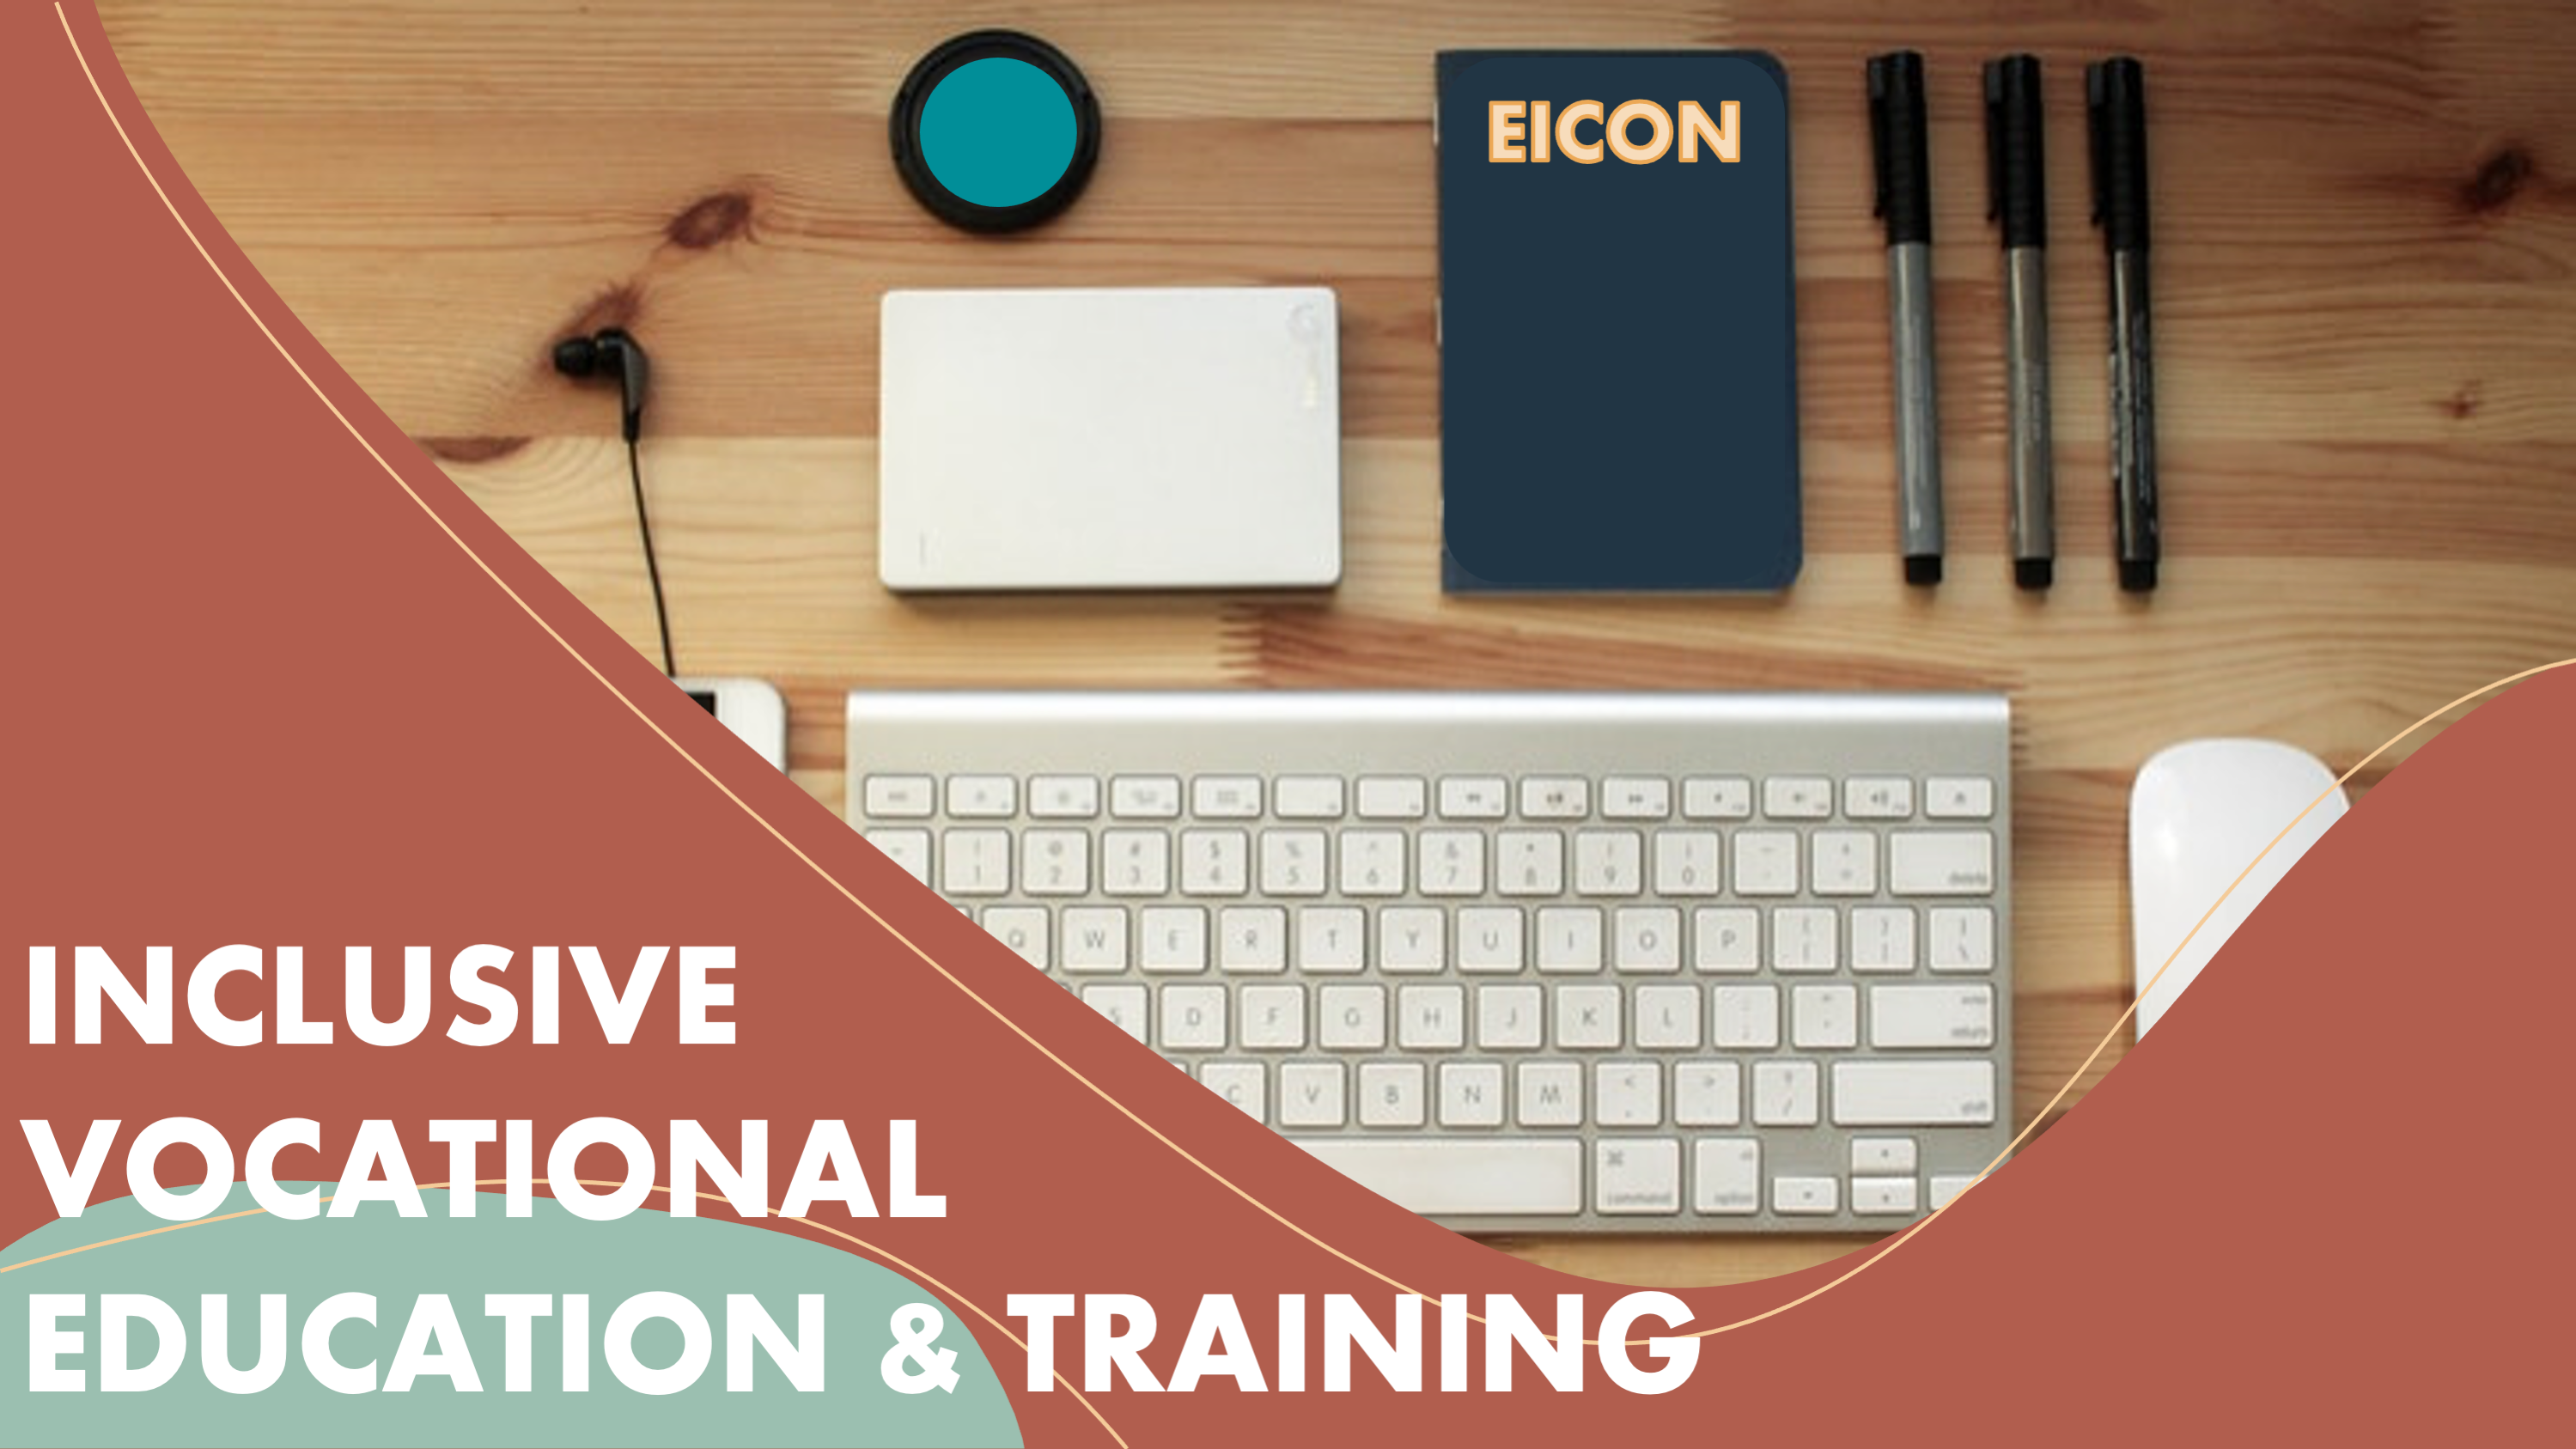 EICON - Inclusive Vocational Education and Training